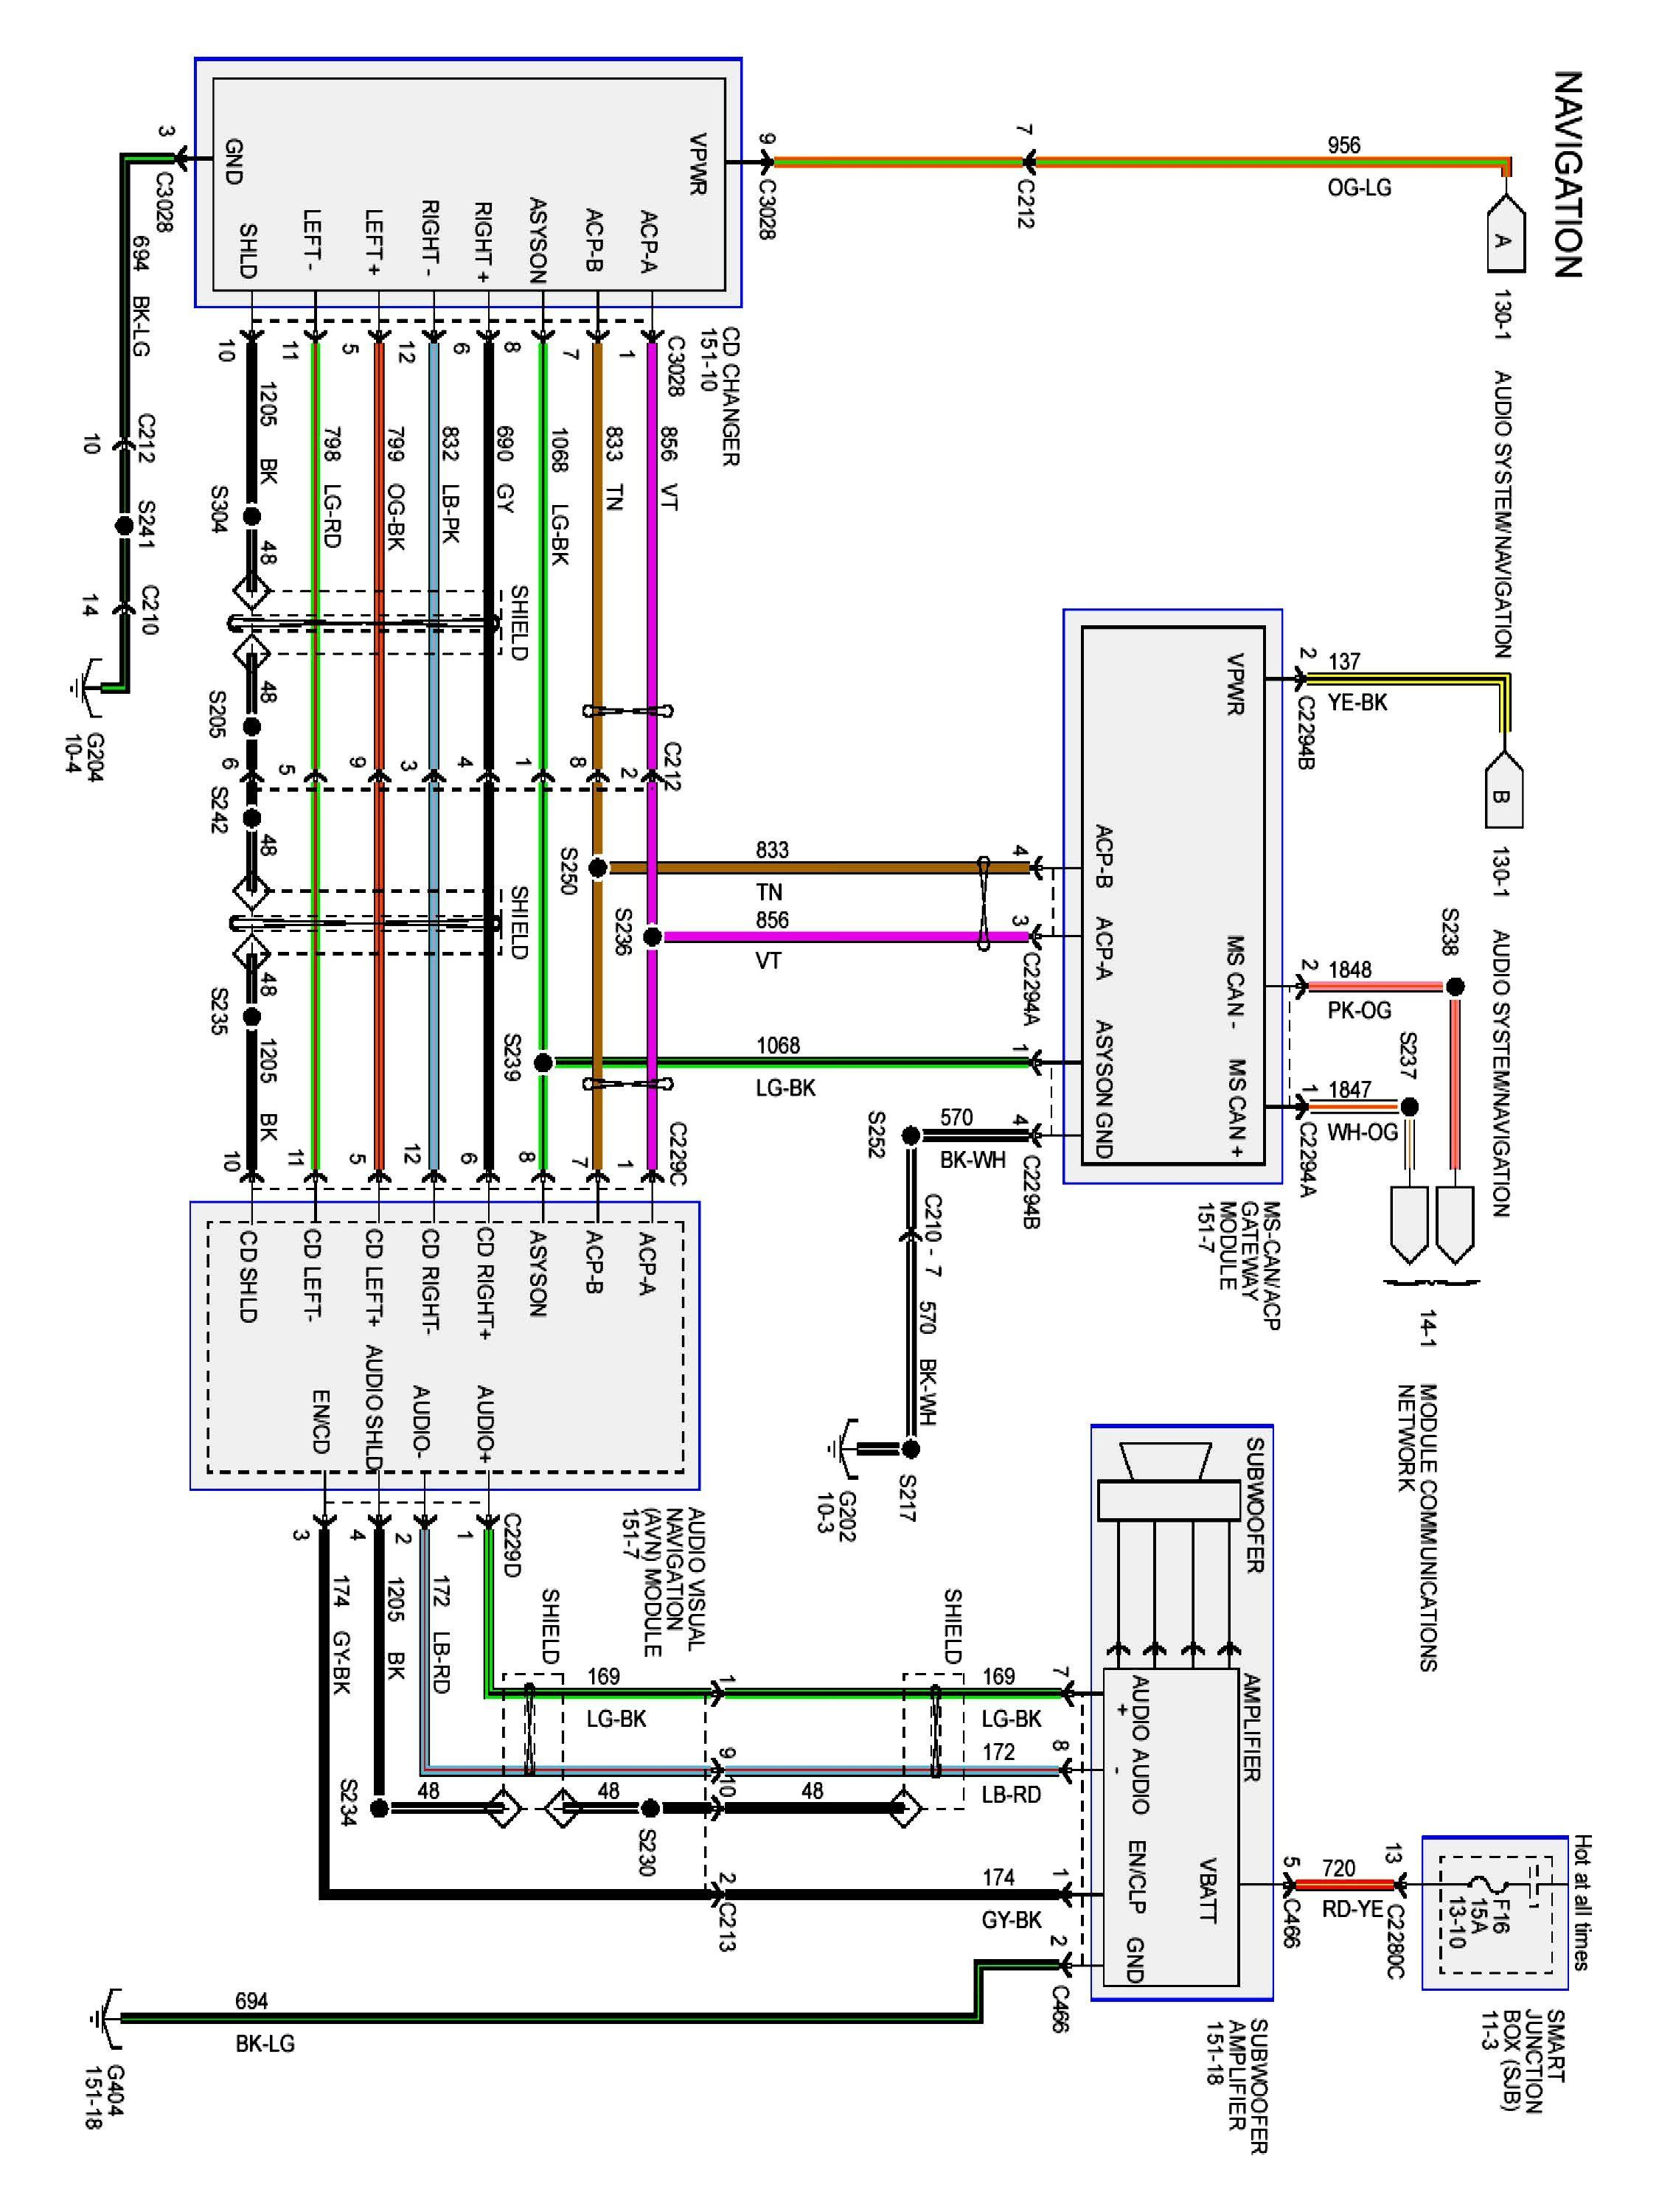 small resolution of wiring diagram for 2007 camry jbl amp schematic diagram database 2007 camry radio wiring diagram 2007 camry wiring diagram